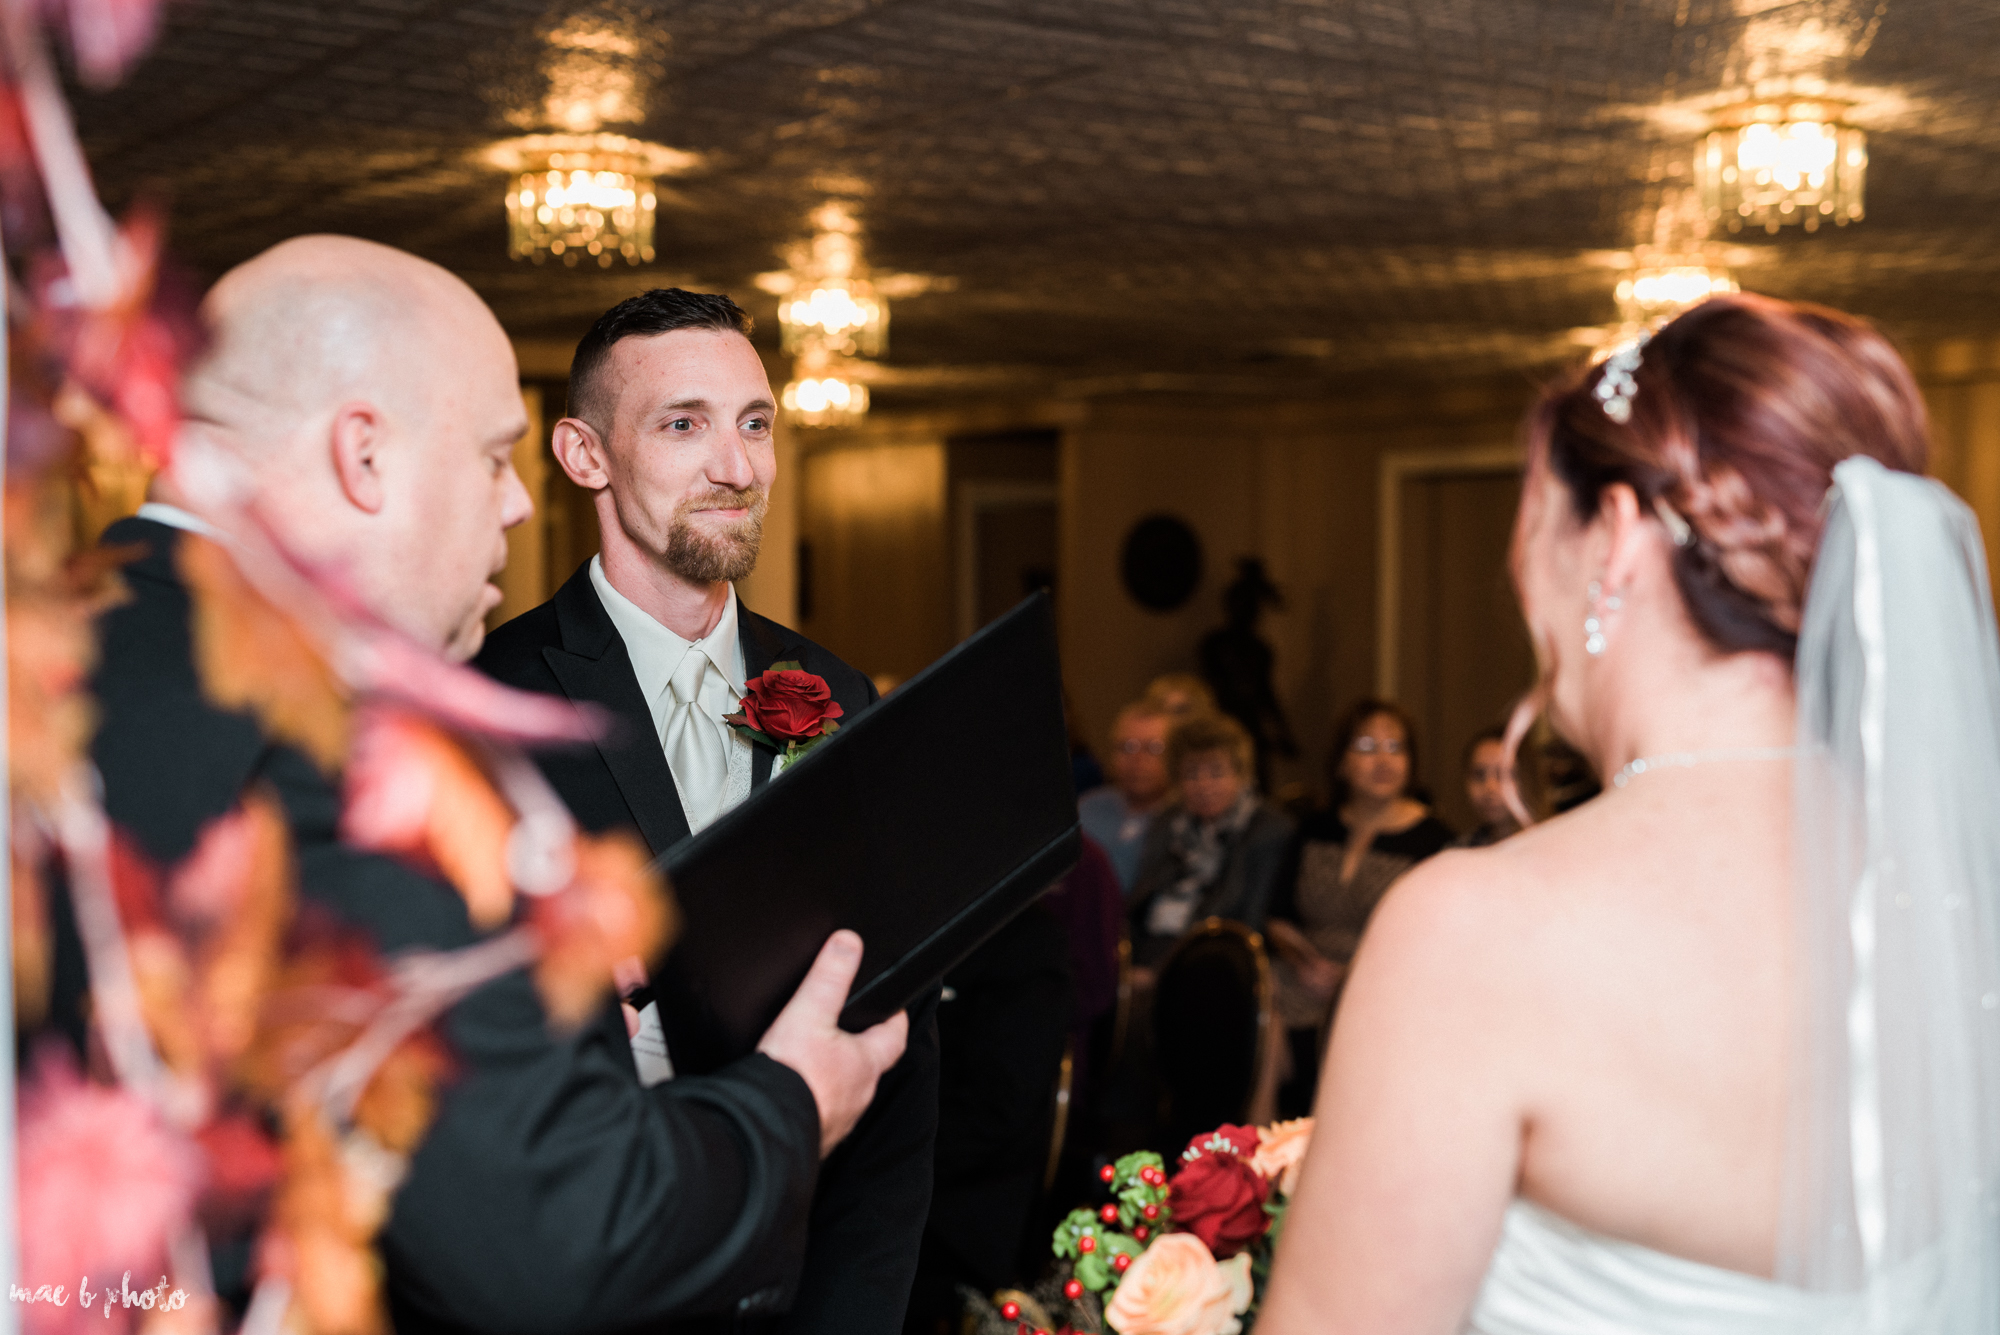 tracey and aaron's personal fall wedding at tiffany's banquet center in brookfield ohio-41.jpg